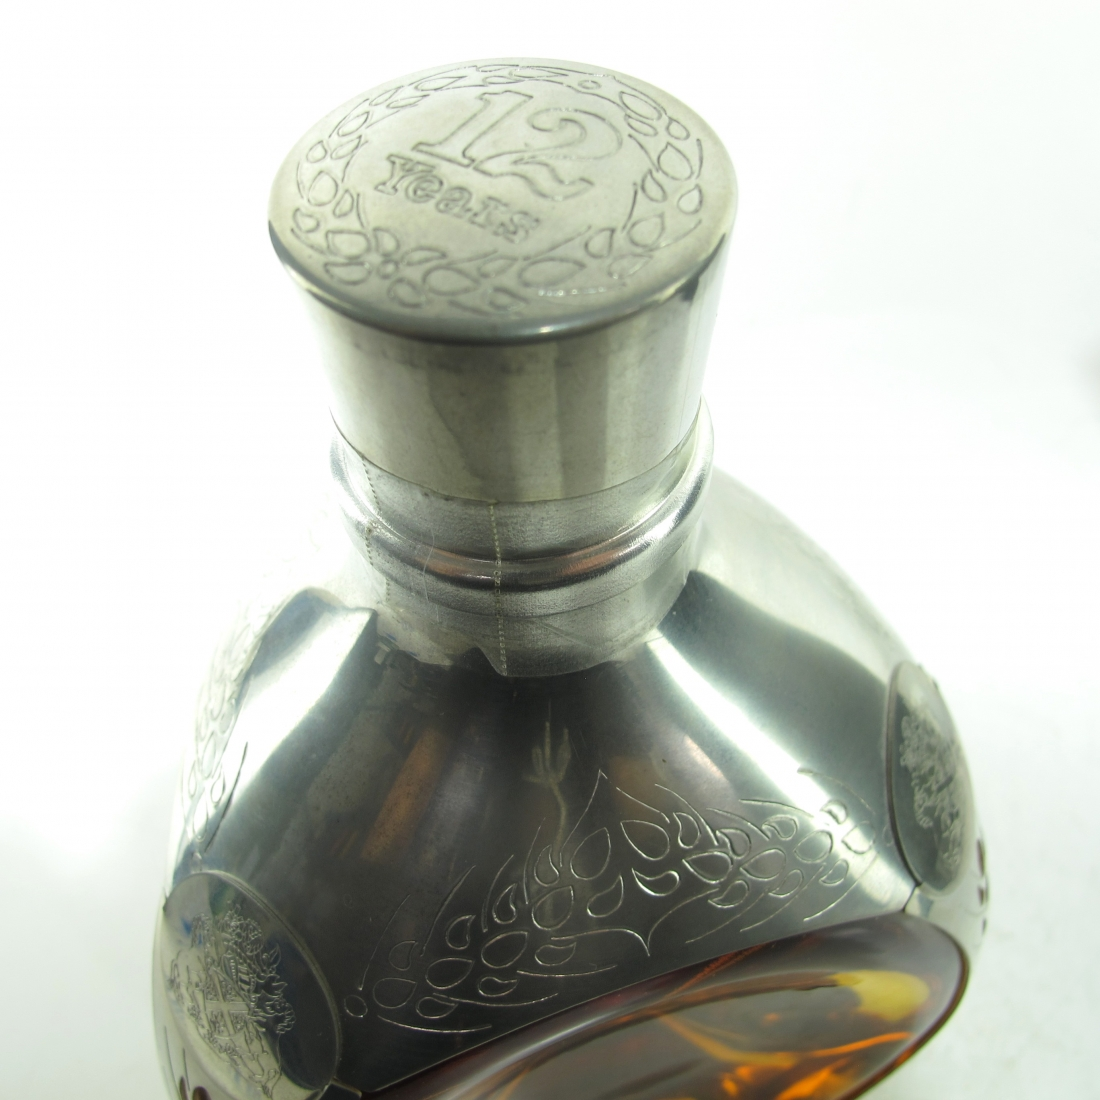 Haig's Dimple 12 Year Old Royal Pewter Decanter 1980s